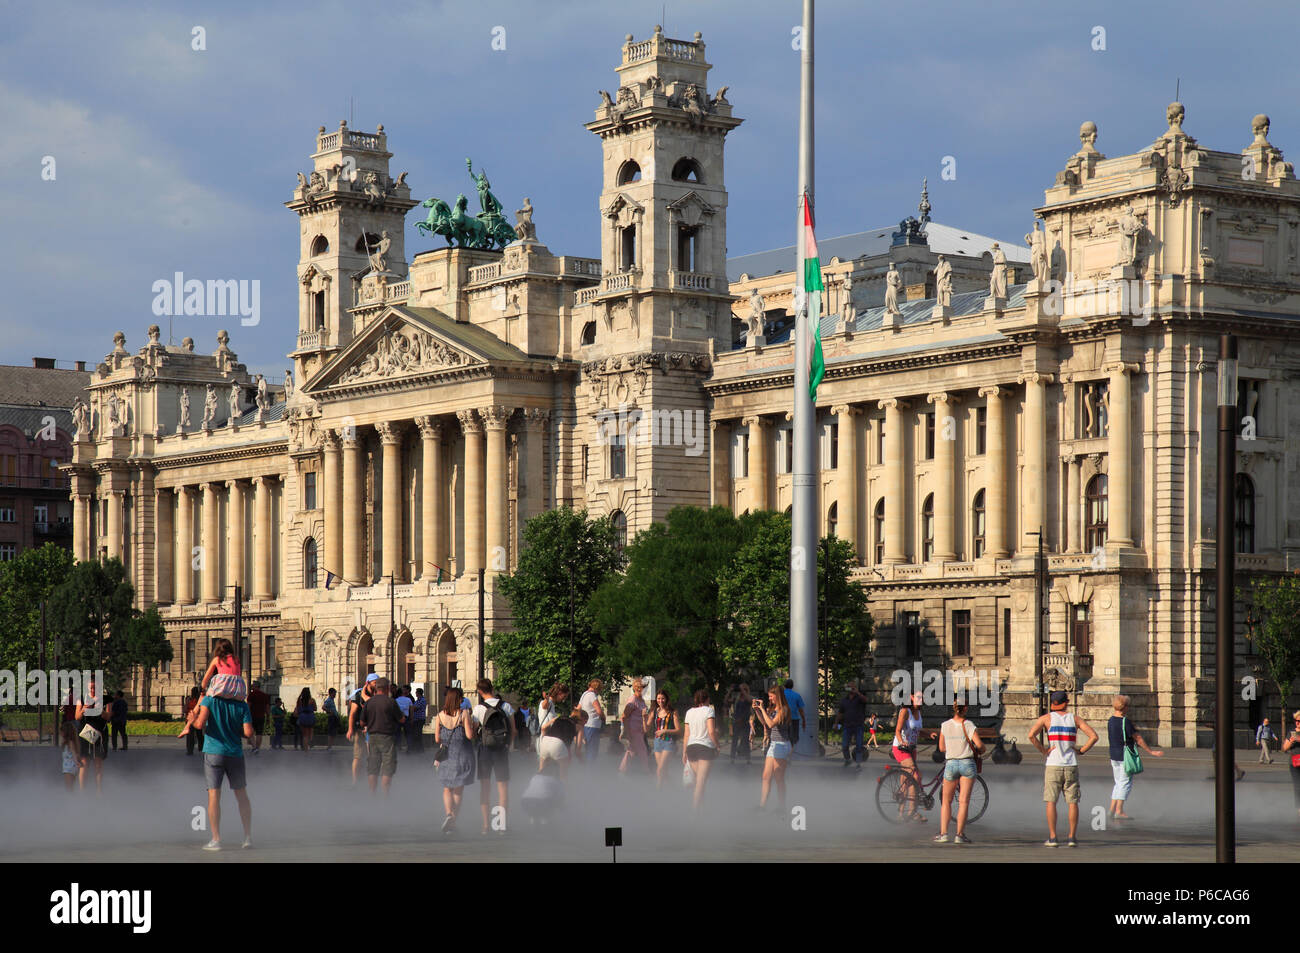 Hungary, Budapest, Museum of Ethnography, Kossuth Lajos Square, people, - Stock Image